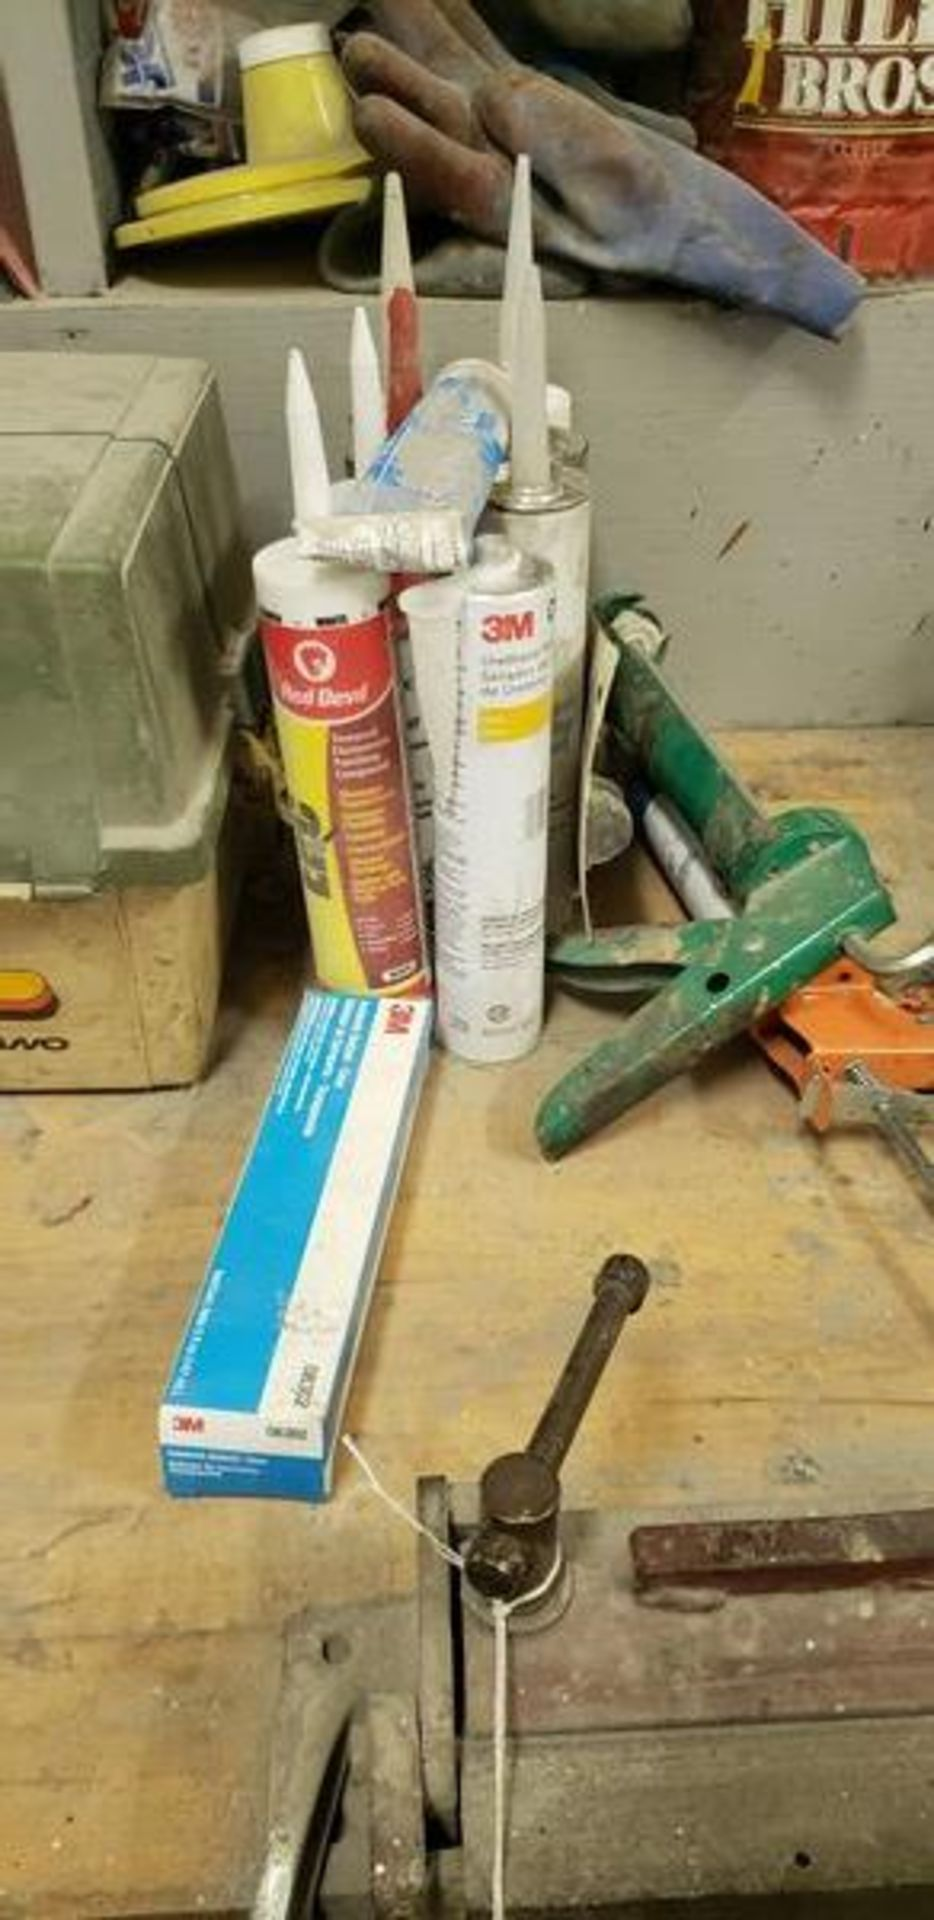 LOT OF PAINTING ITEMS ON LEFT TABLE, TOP AND BACK SHELF (TAGGED SPRAY GUNS AND OTHER TAGGED ITEMS AR - Image 4 of 12